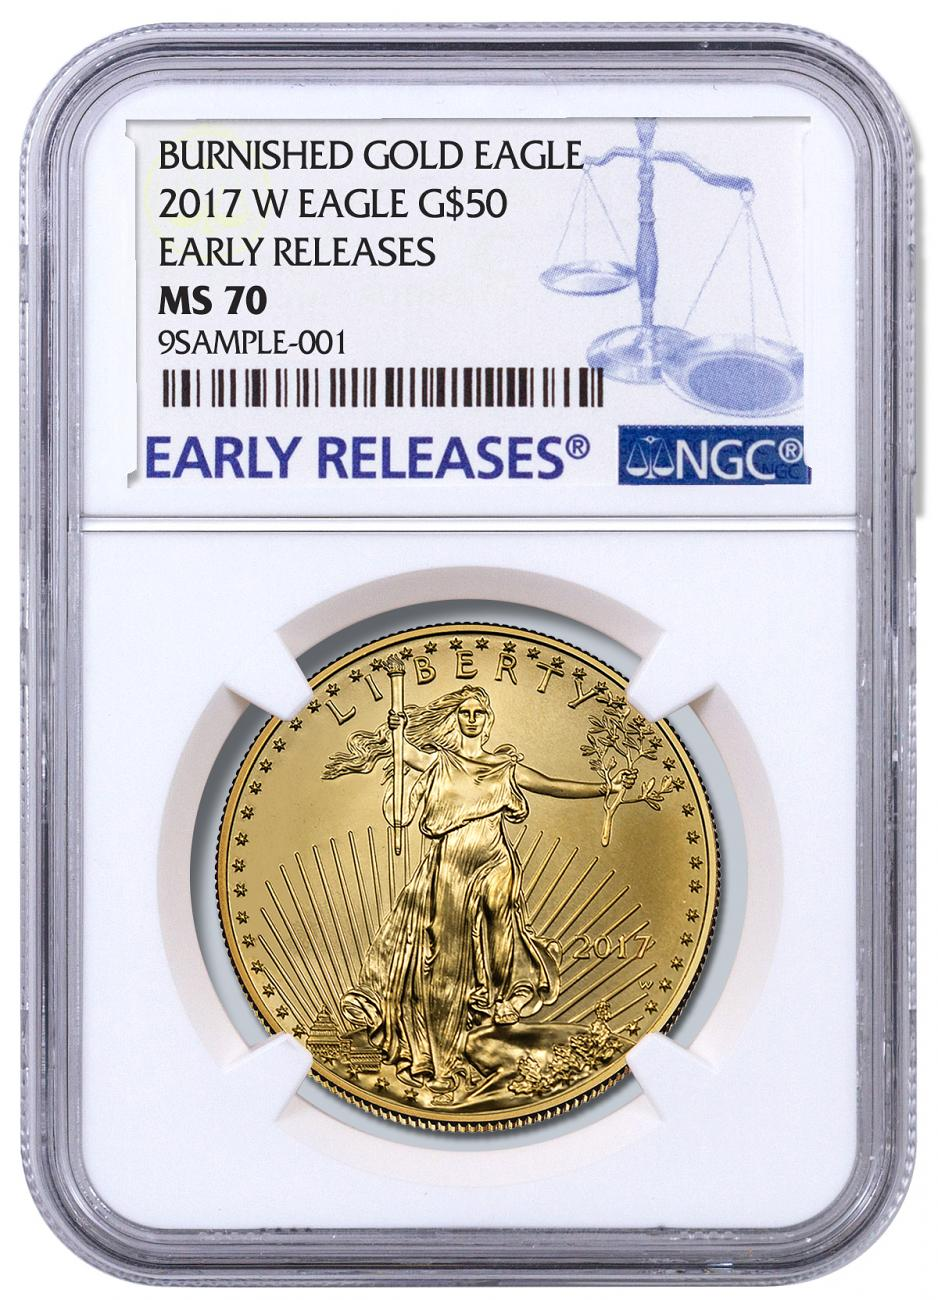 2017 W 1 Oz Burnished Gold American Eagle 50 Ngc Ms70